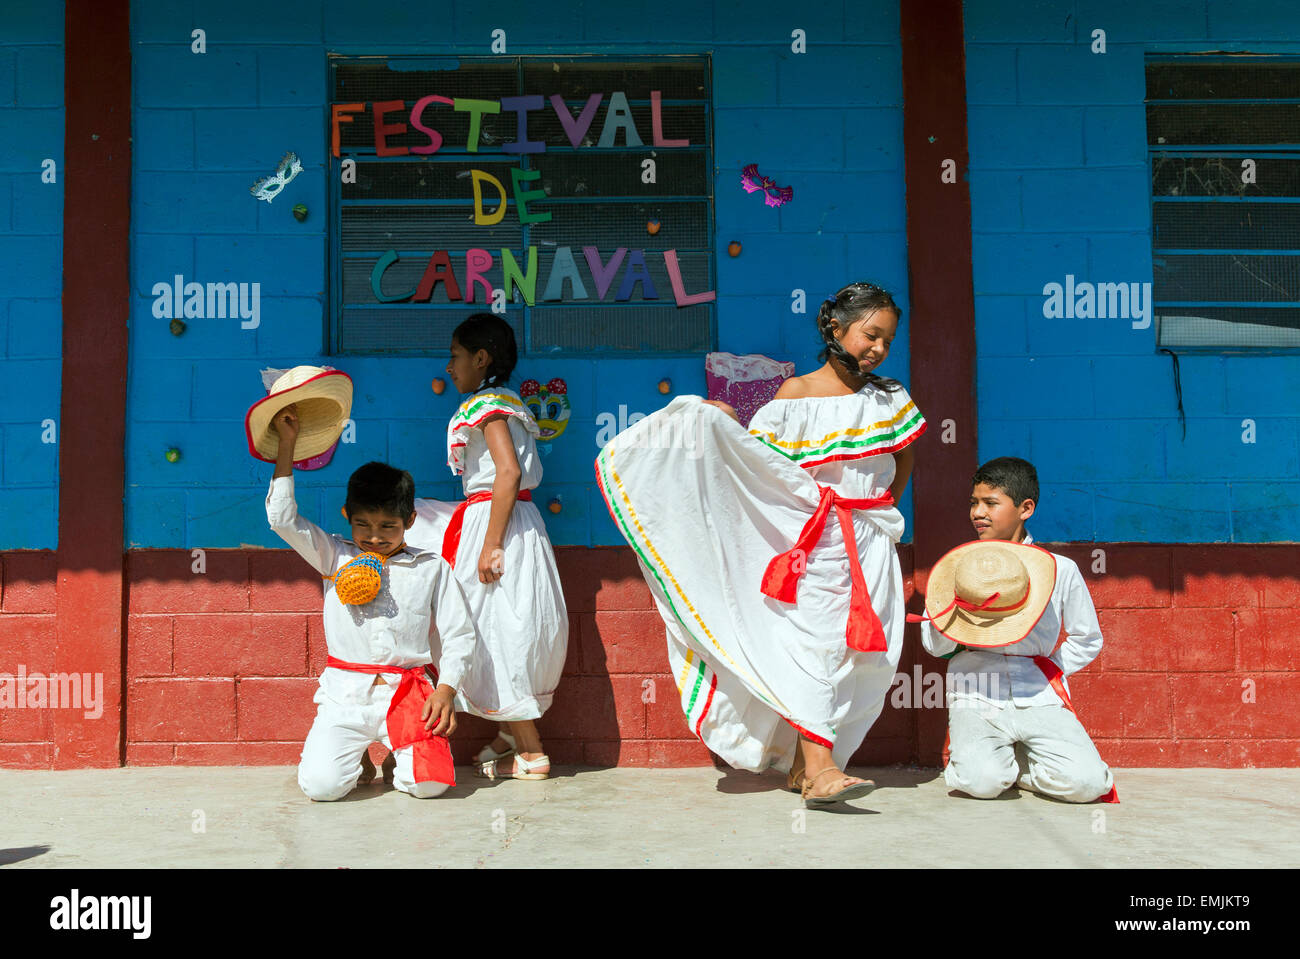 Guatemala,Jalapa, children dressed in costume for Carnaval or Mardi Gras - Stock Image